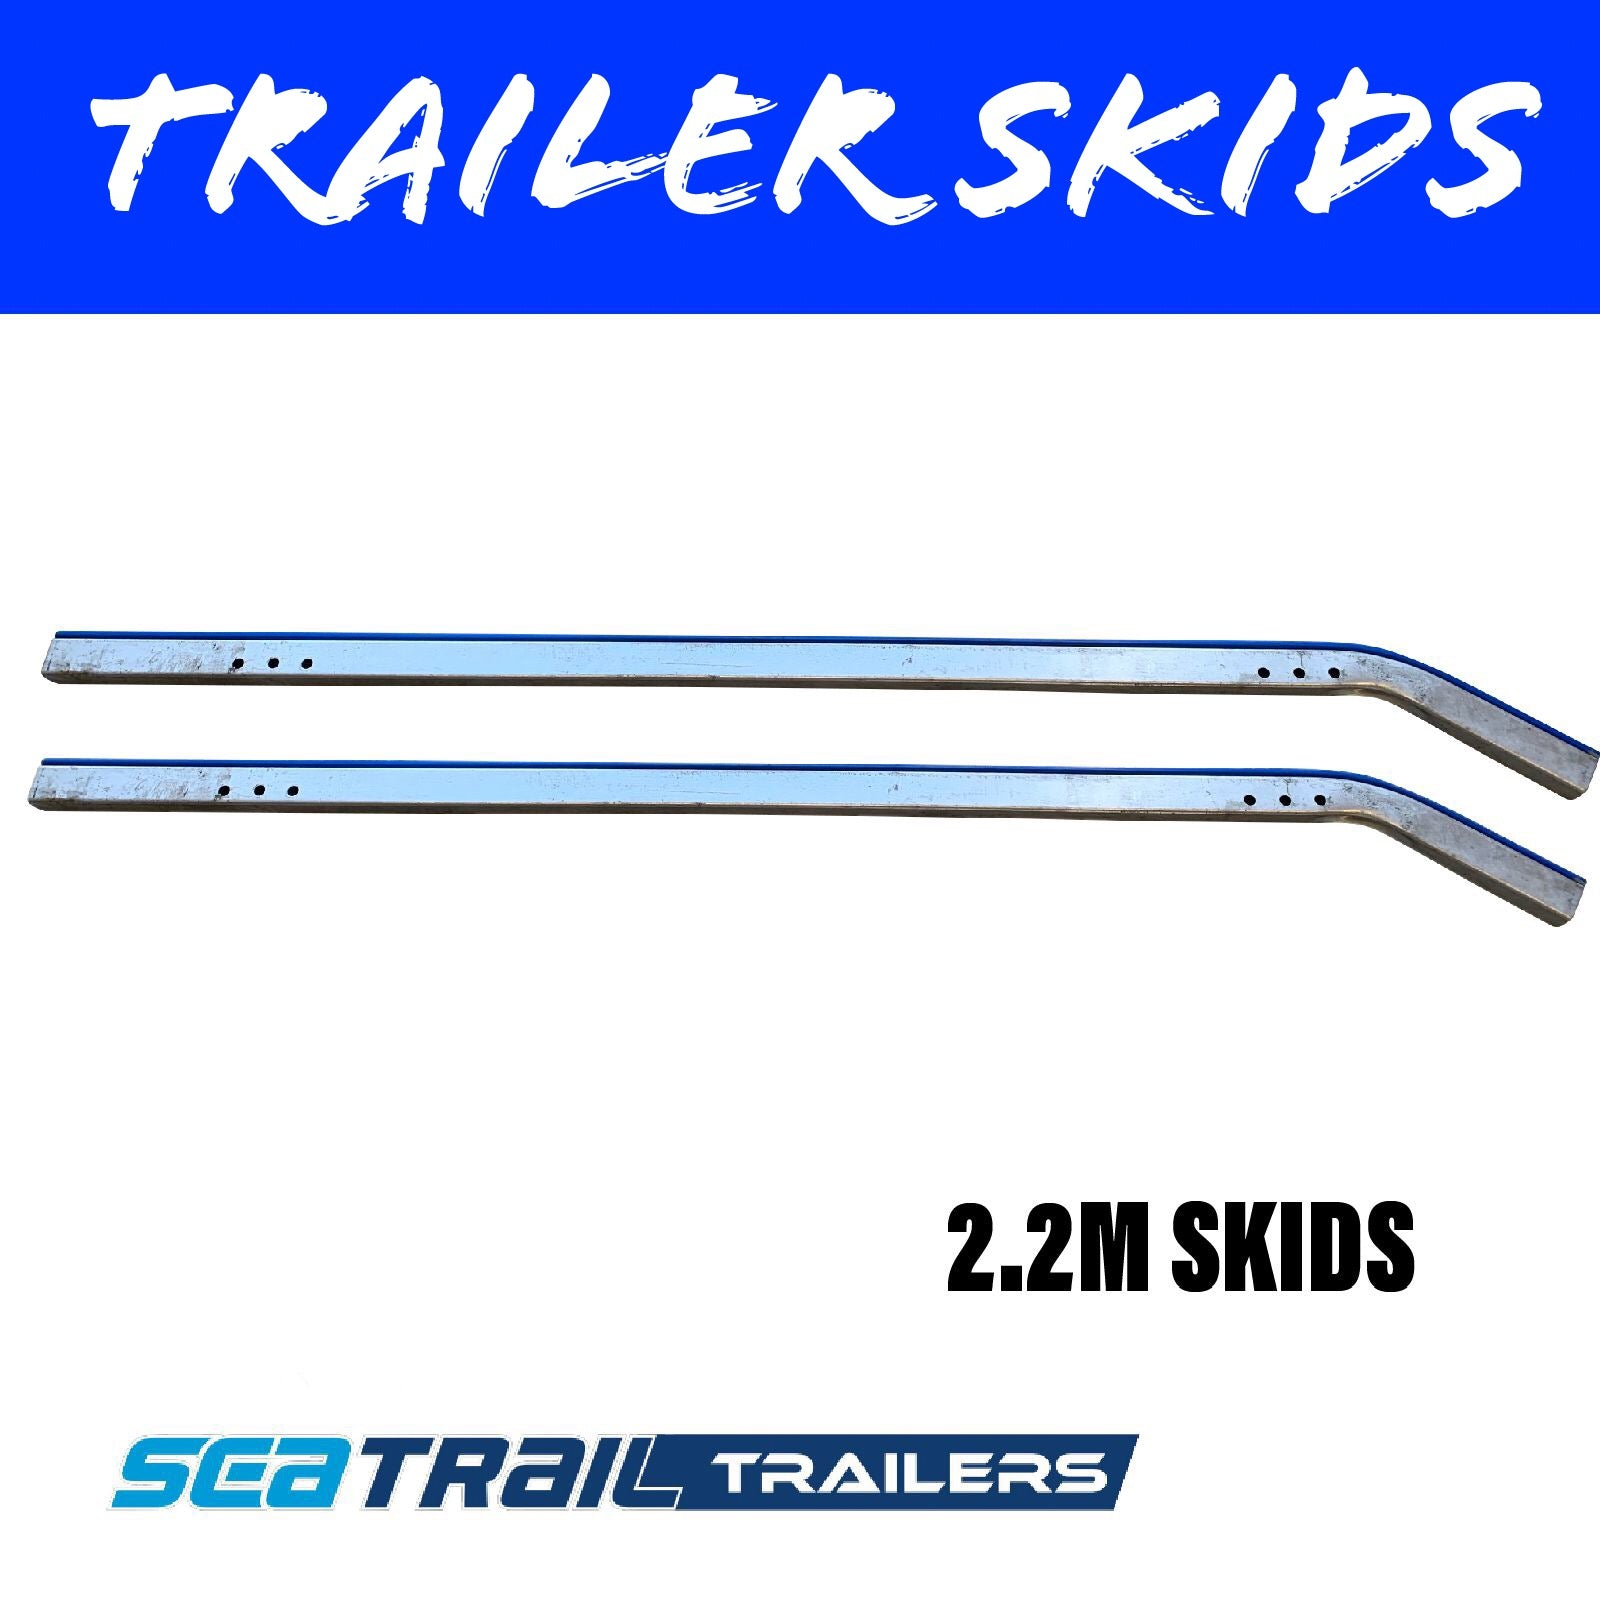 2.2M METAL BACKED Boat Trailer Skids Pair